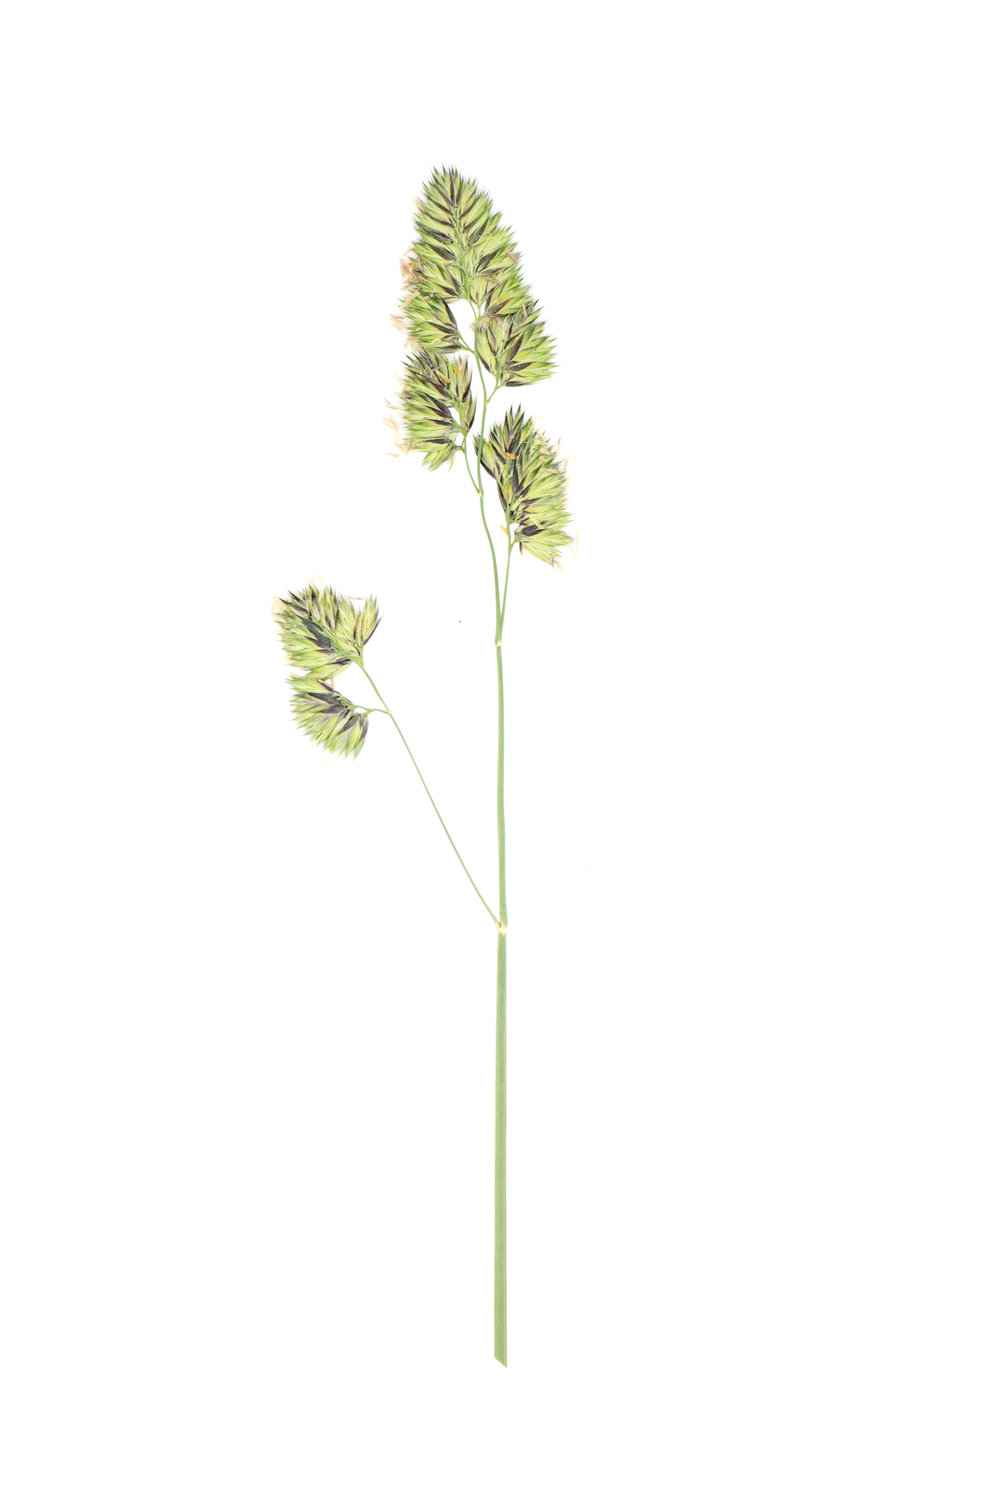 New! Cocksfoot or Orchardgrass / Dactylis glomerata